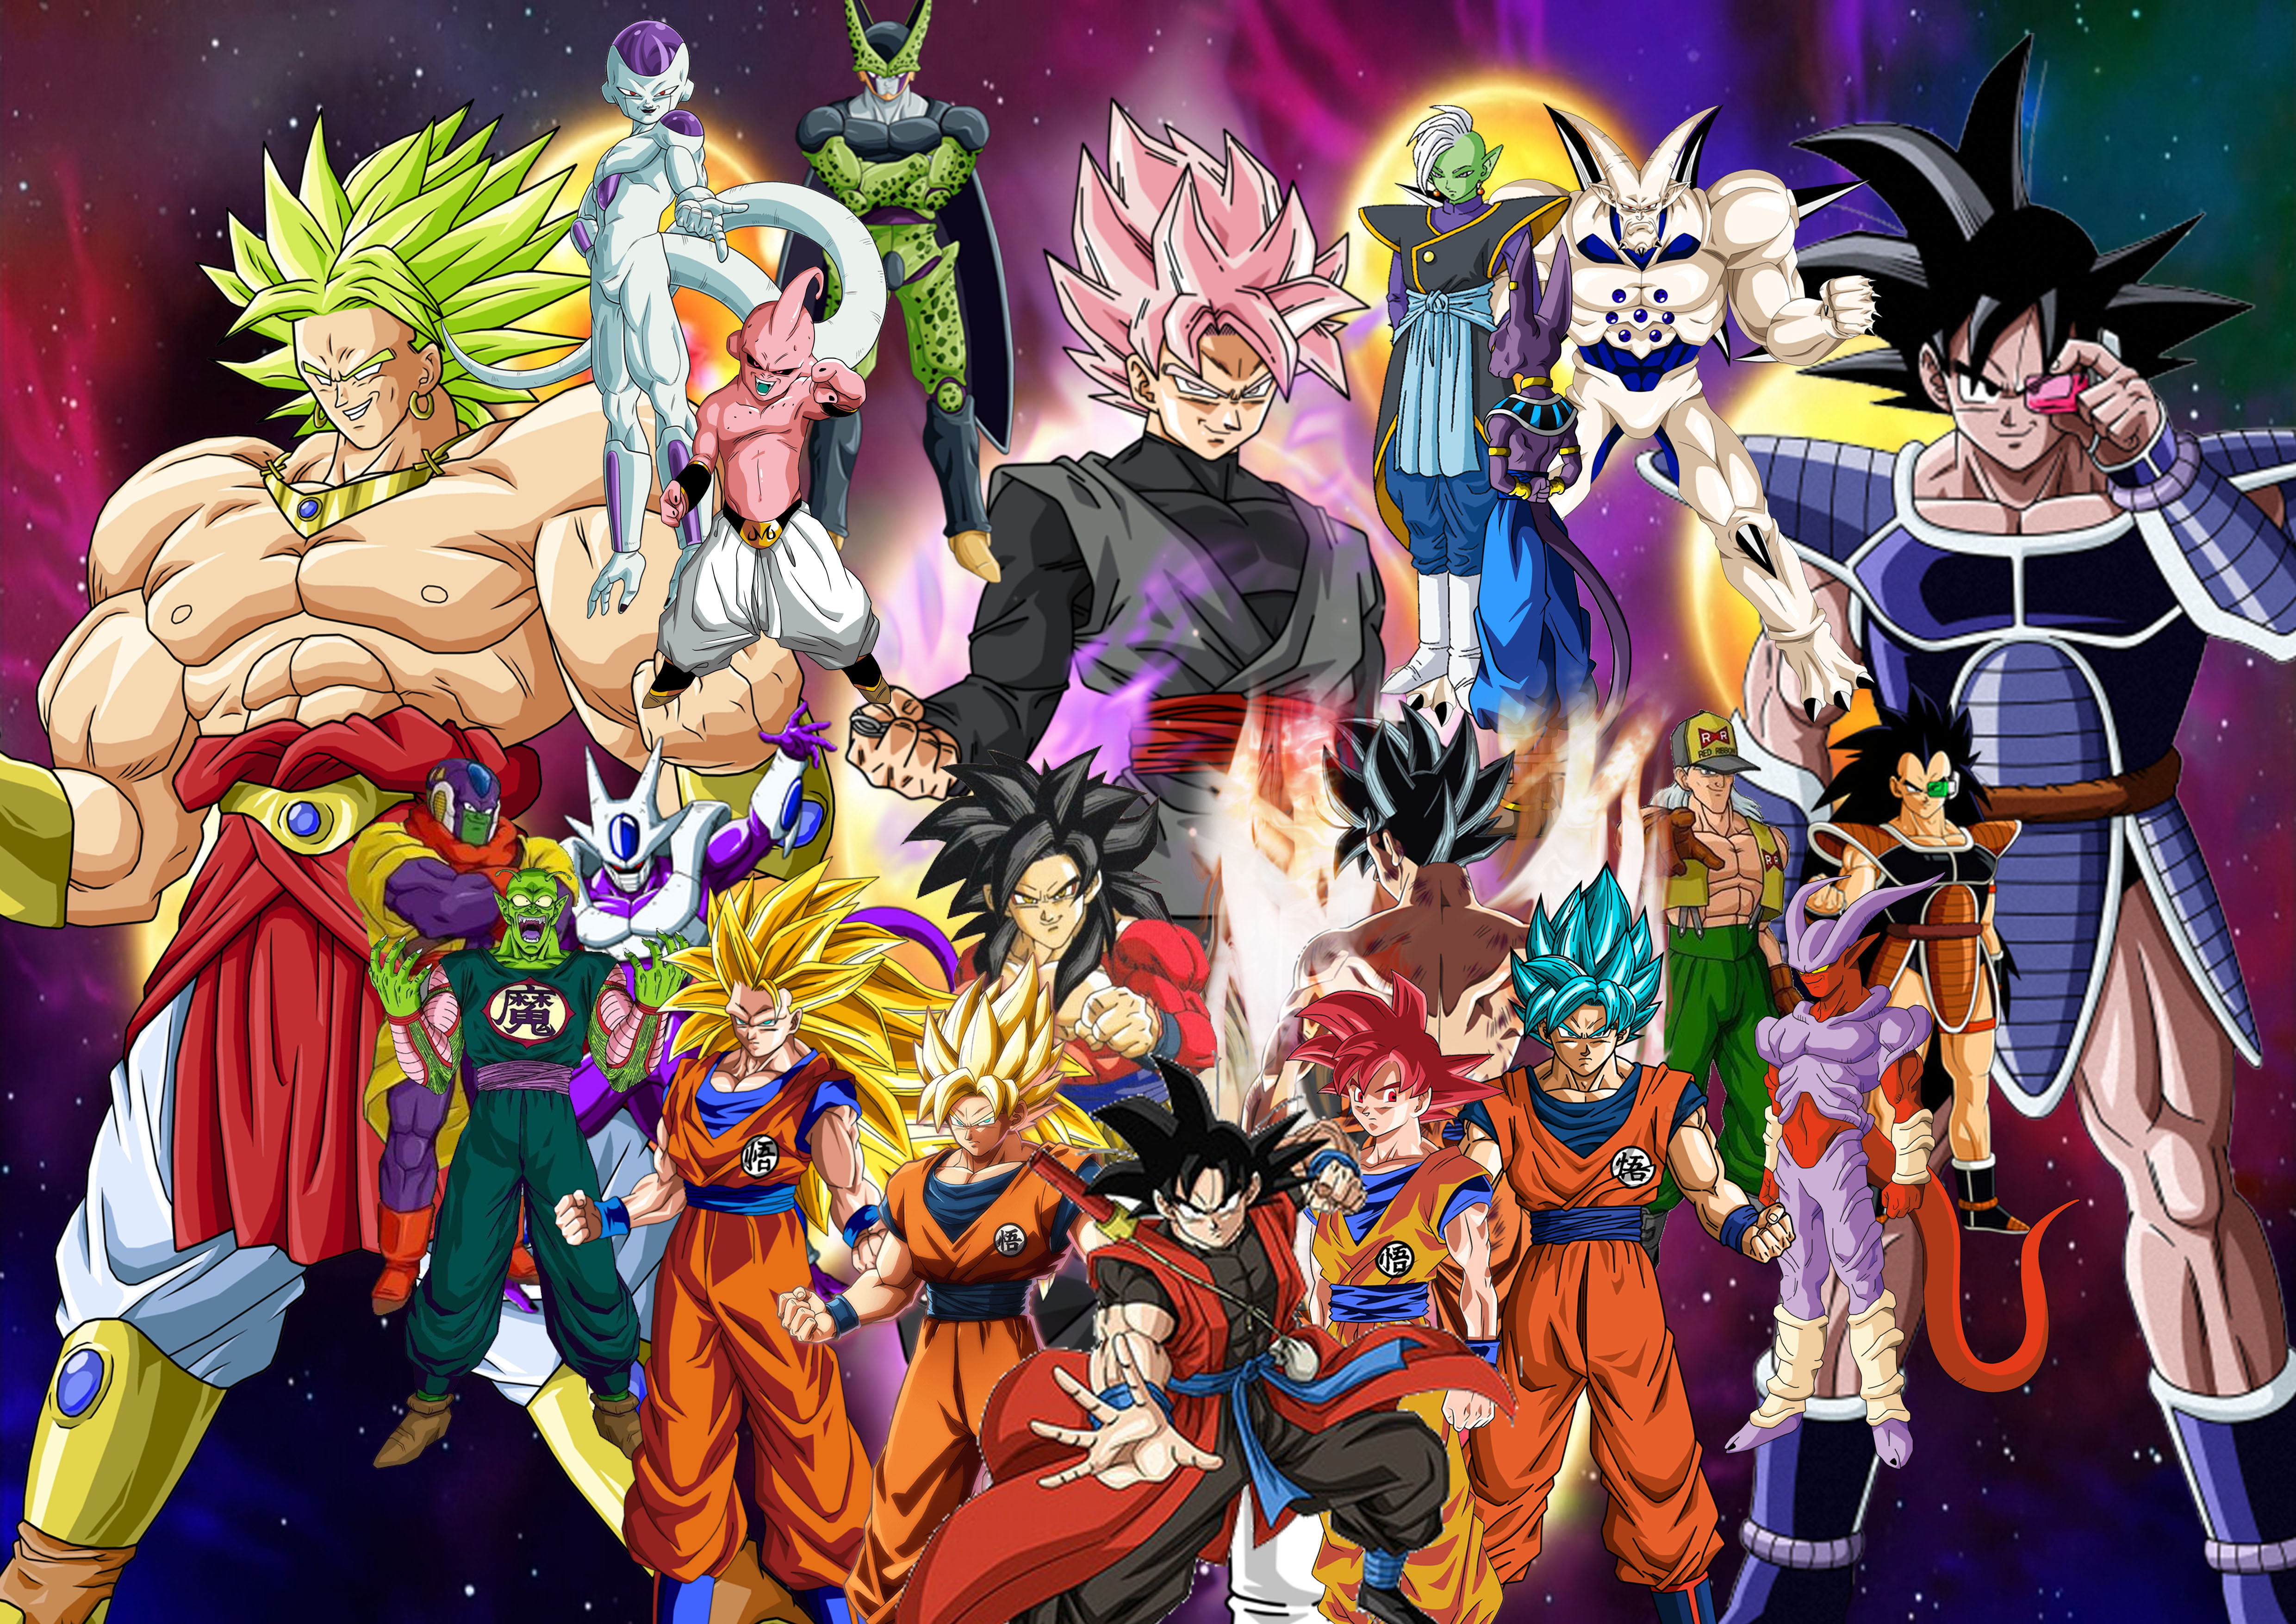 Goku Vs His Main Villains By Supersaiyancrash On Deviantart